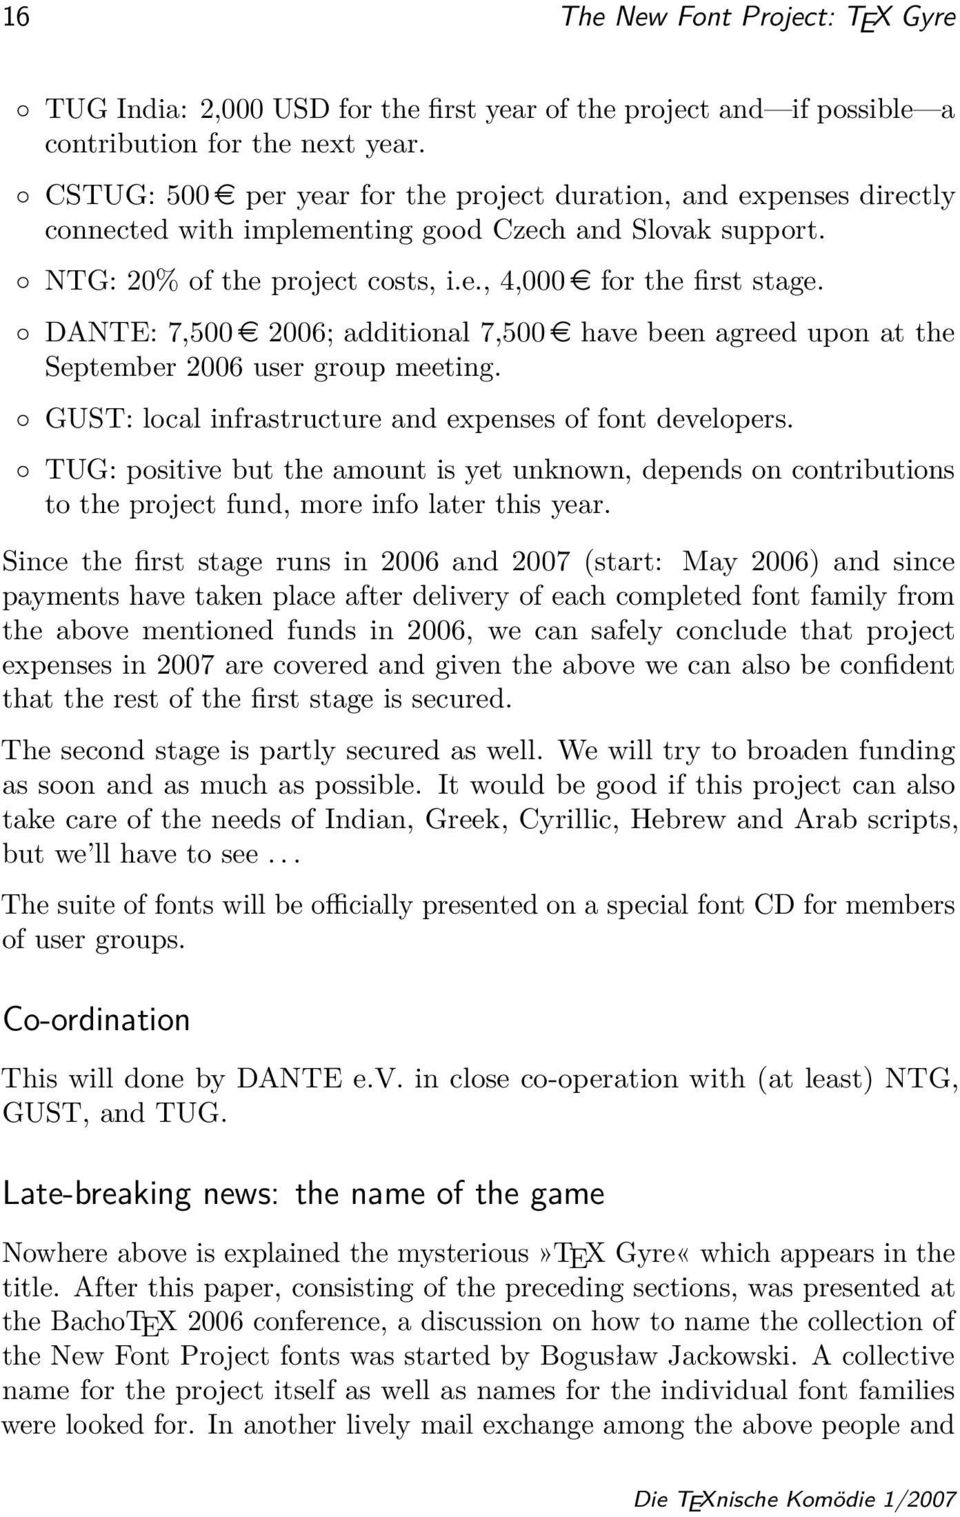 DANTE: 7,500 e 2006; additional 7,500 e have been agreed upon at the September 2006 user group meeting. GUST: local infrastructure and expenses of font developers.